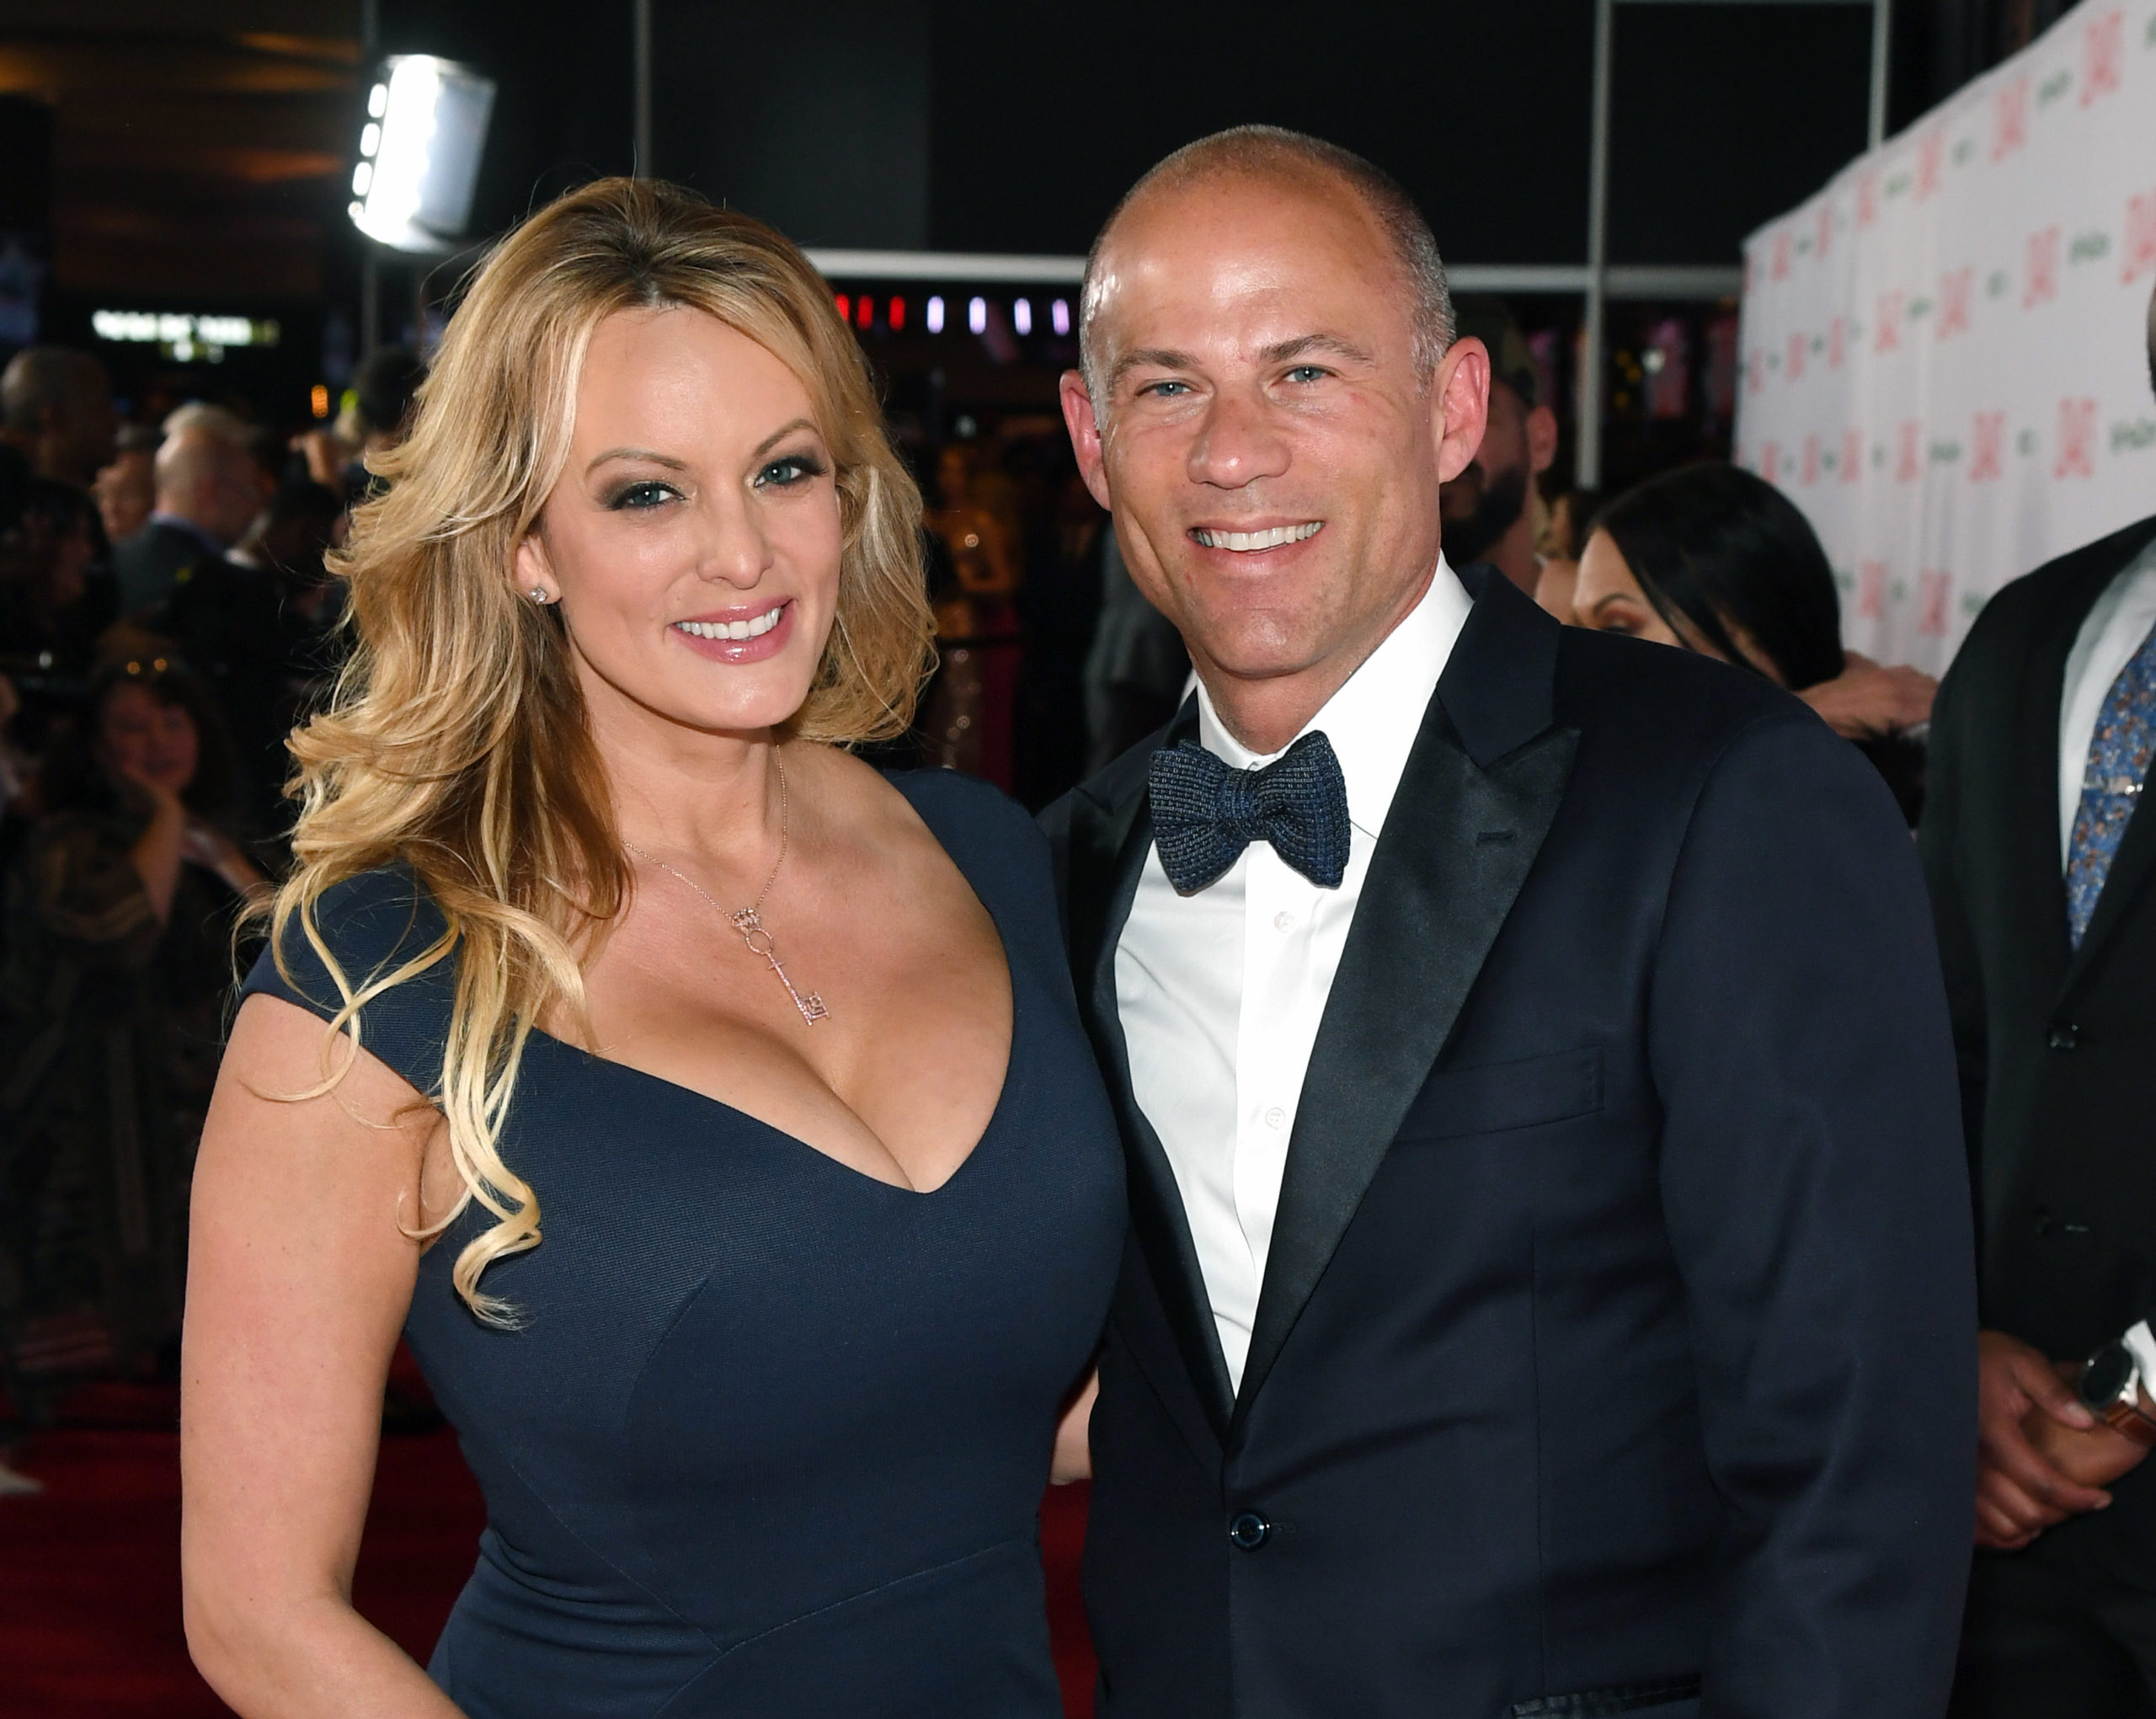 Adult film actress/director Stormy Daniels (L) and attorney Michael Avenatti attend the 2019 Adult Video News Awards at The Joint inside the Hard Rock Hotel & Casino on January 26, 2019 in Las Vegas, Nevada. (Ethan Miller/Getty Images)